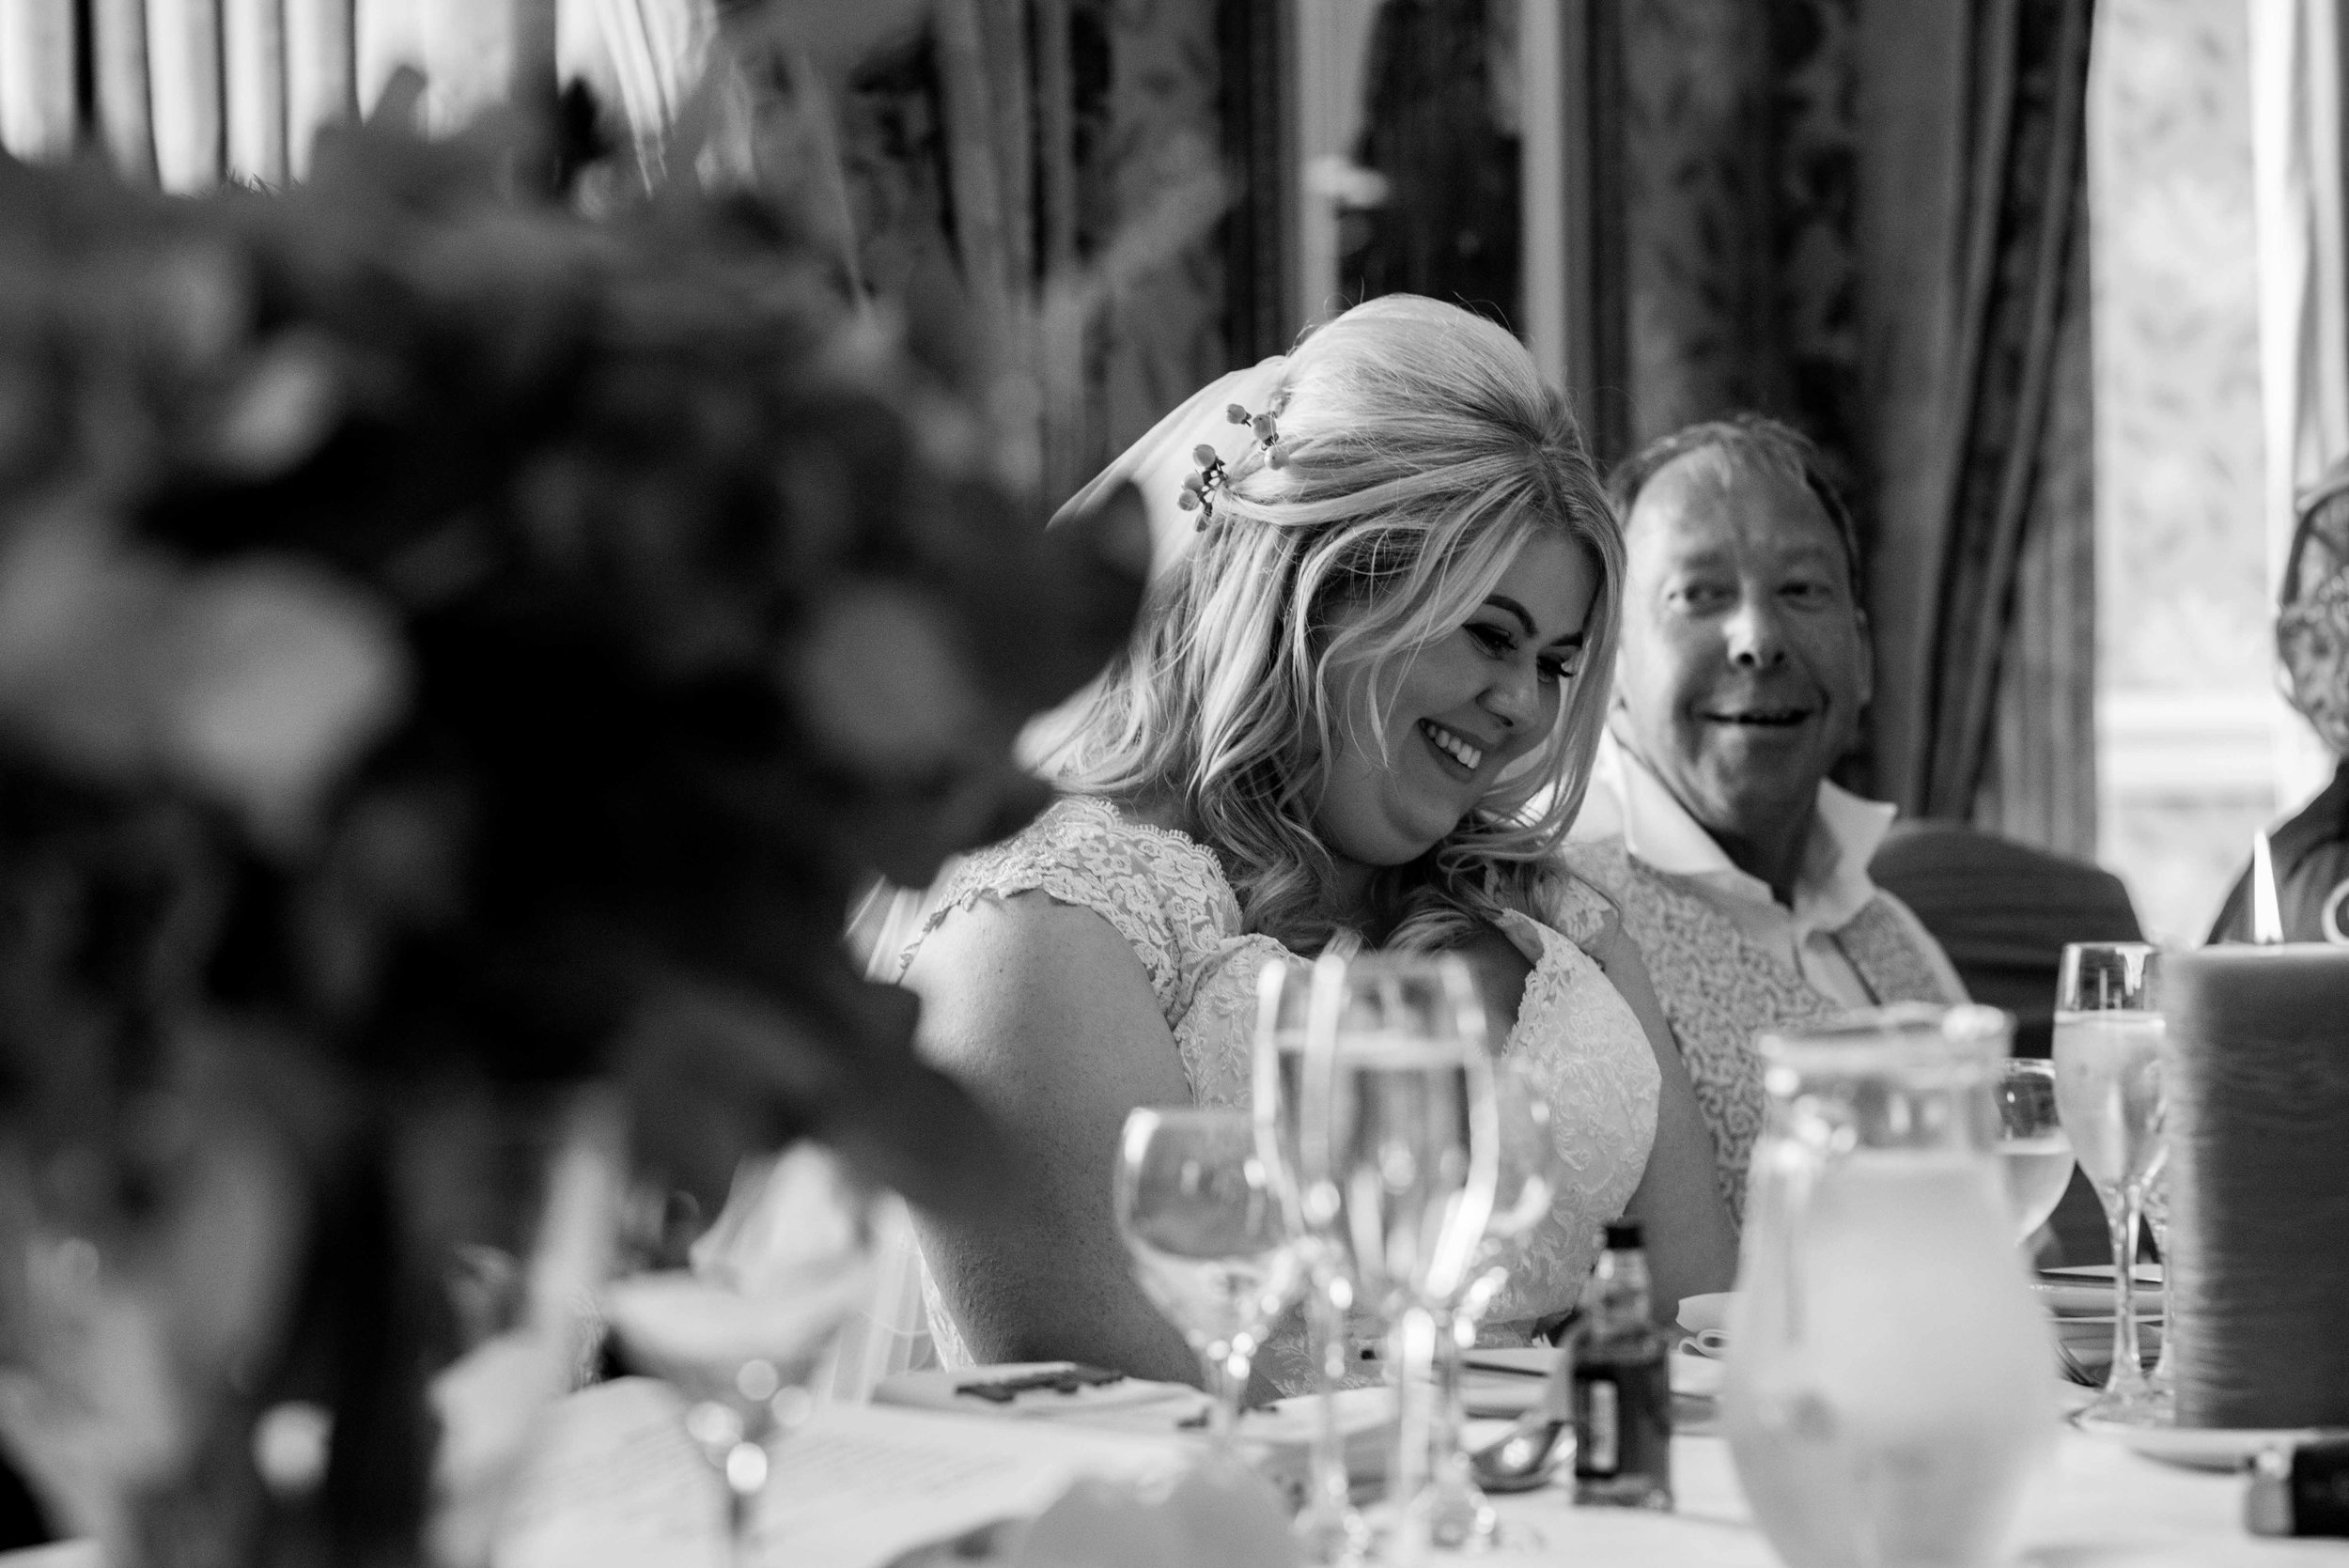 The bride has a giggle during the father of the bride speech